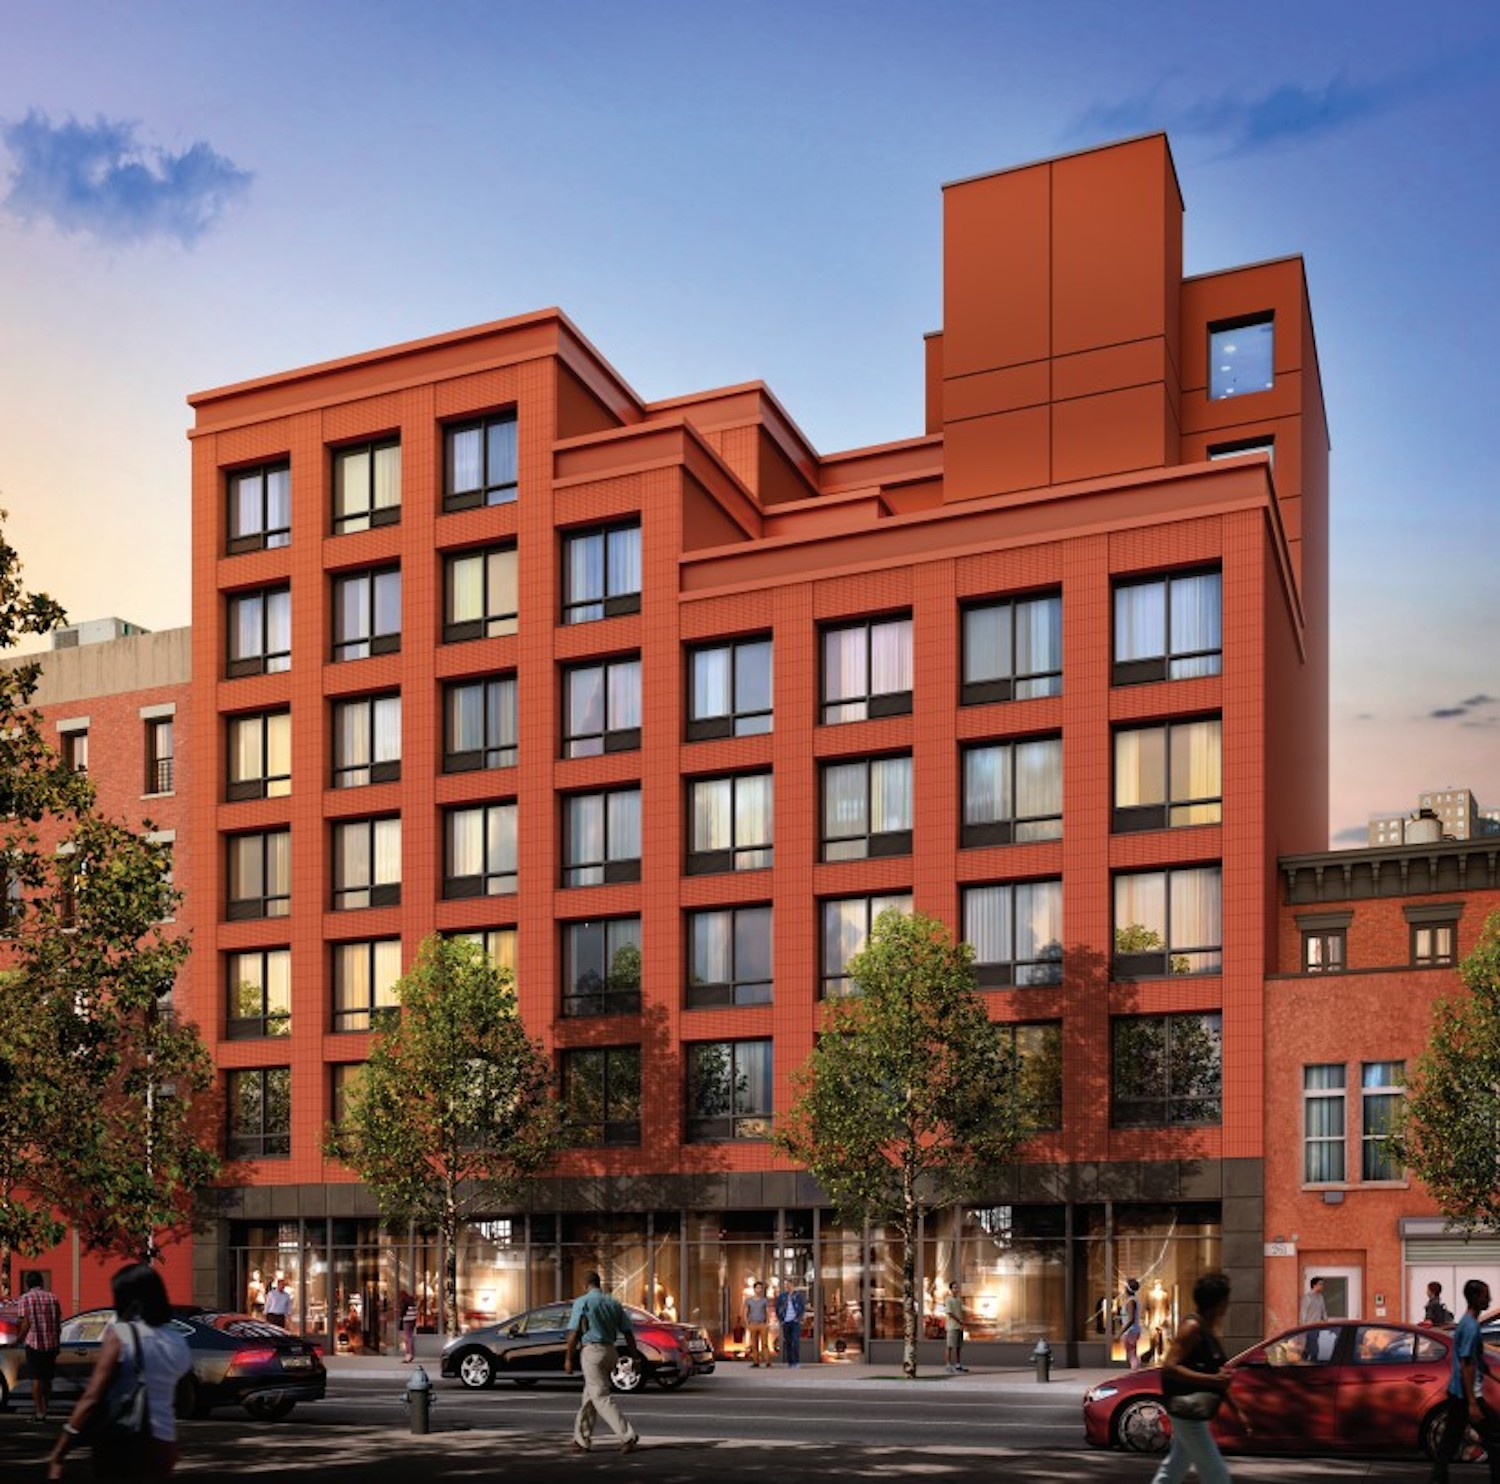 Balton Commons at 267 West 126th Street in Harlem, Manhattan. Courtesy of NYC Housing Connect